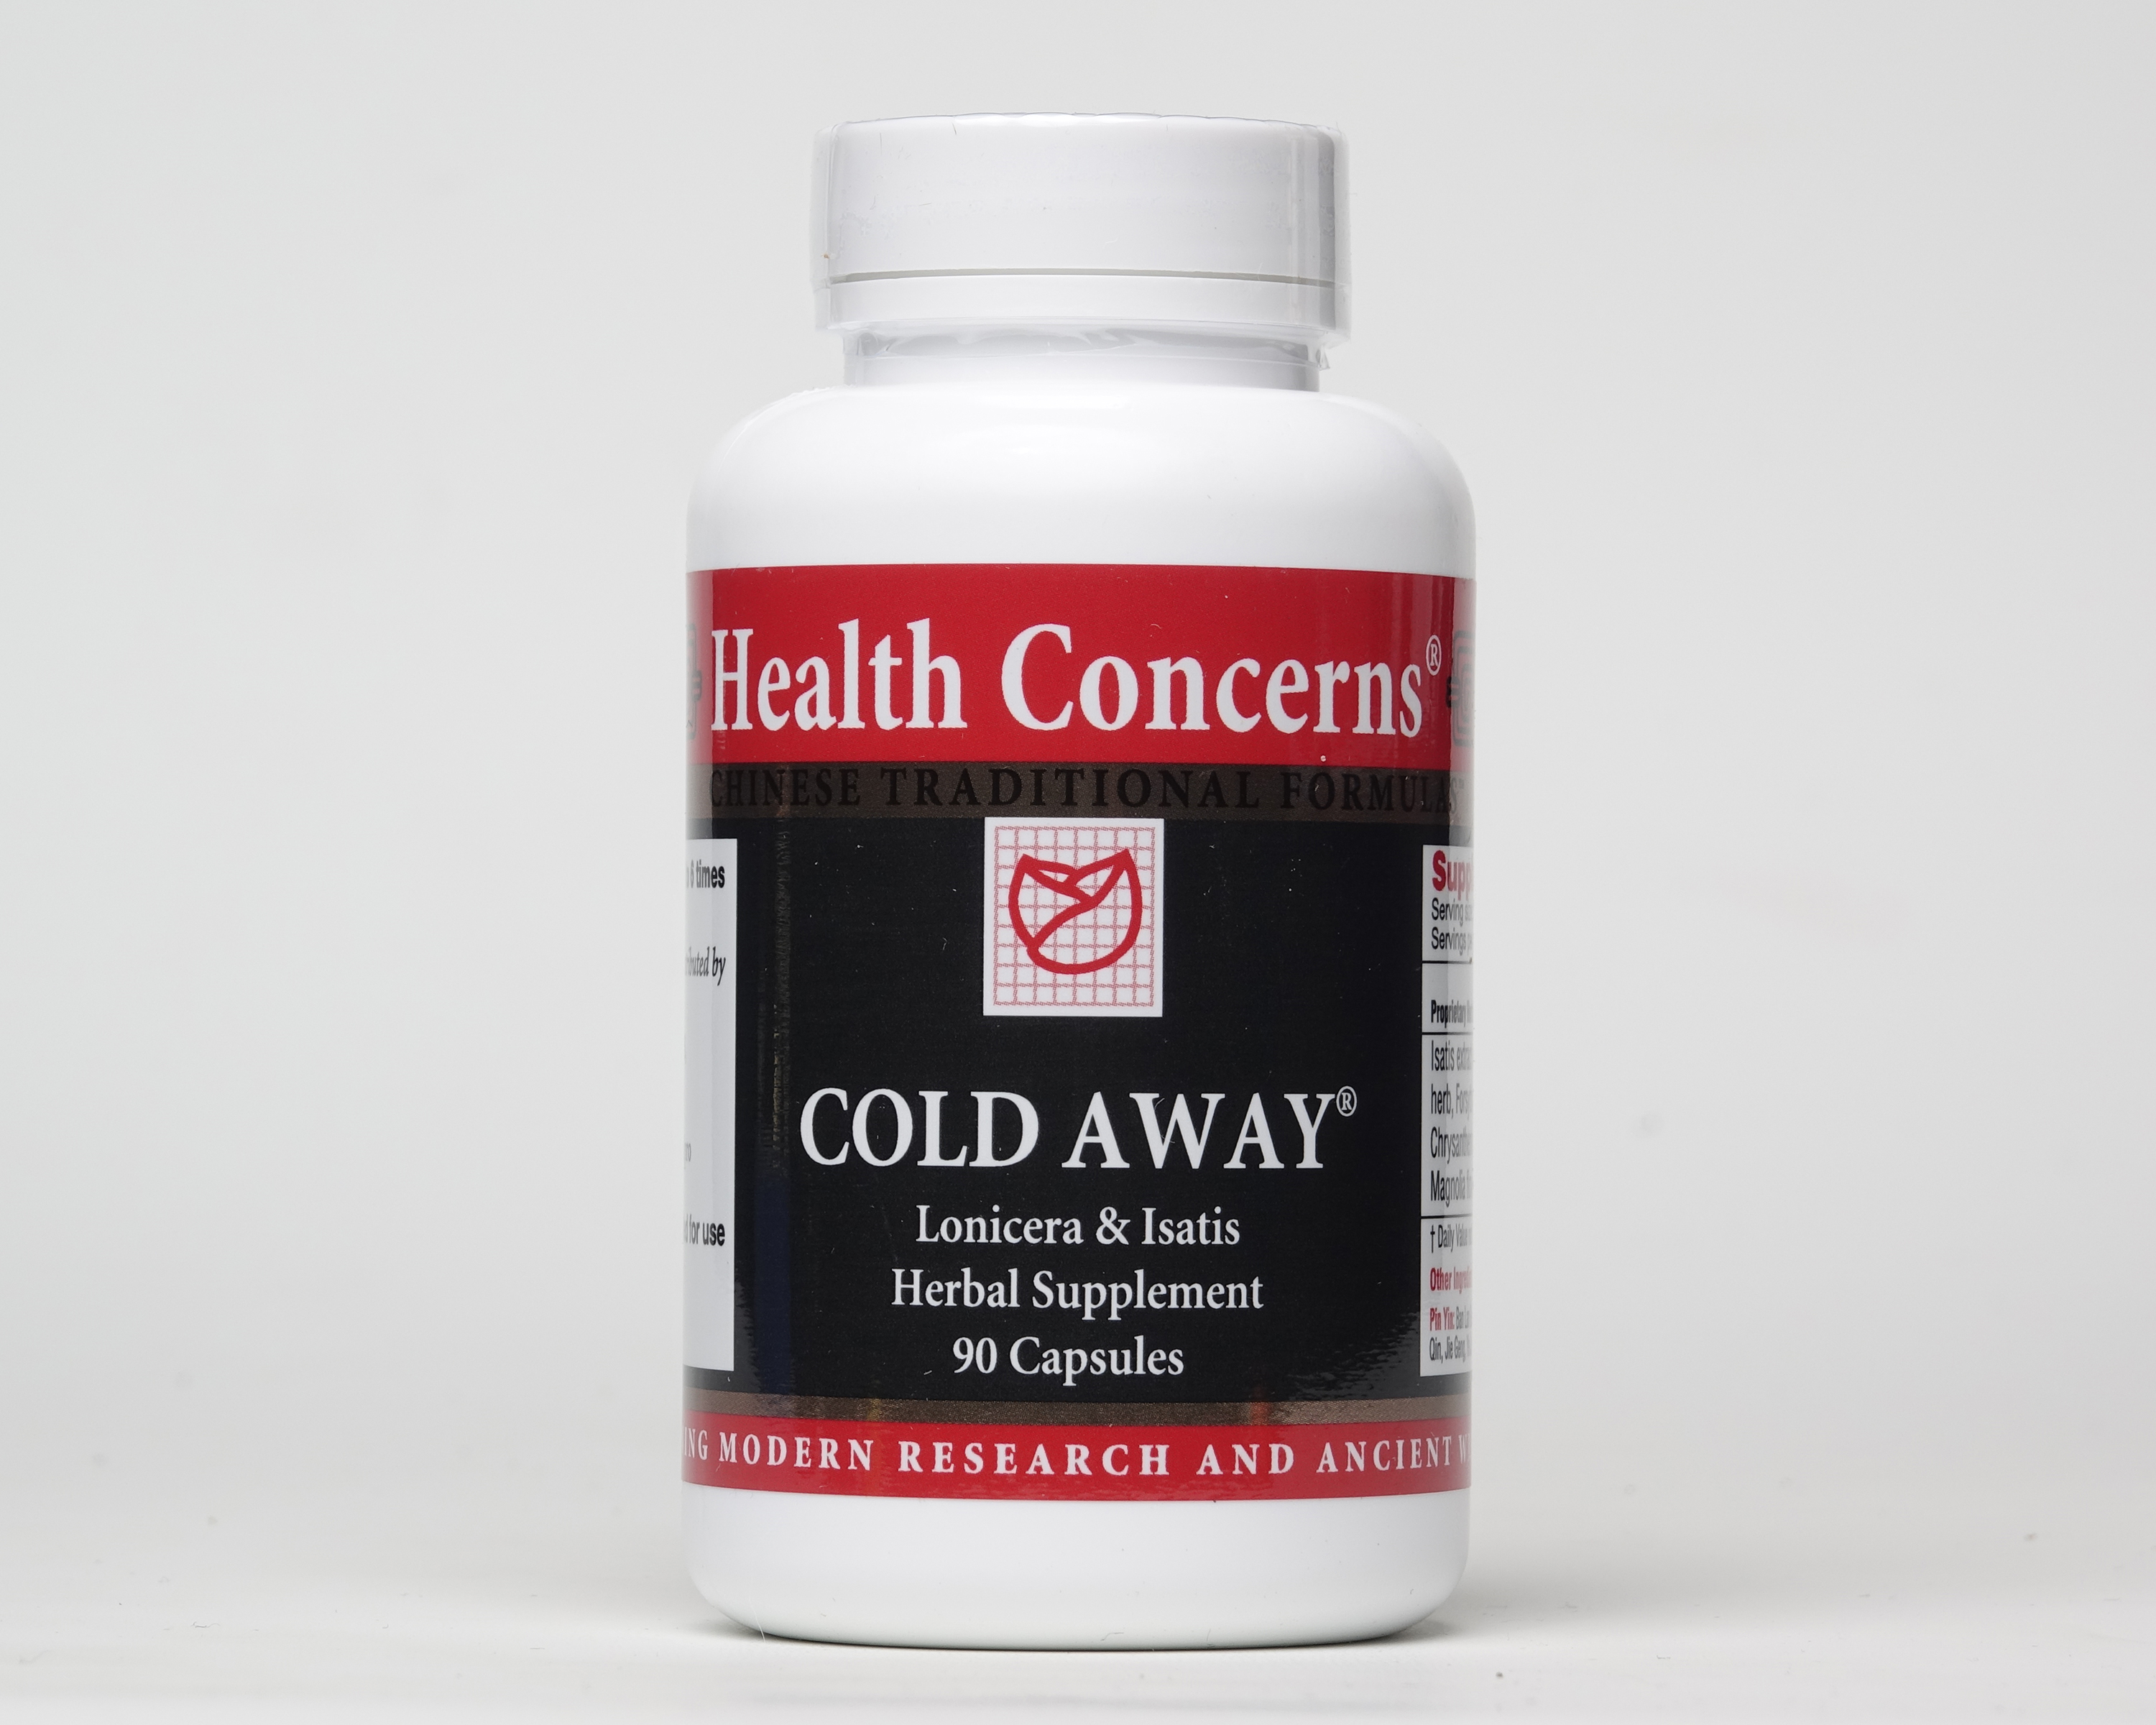 Cold Away (Lonicera & Isatis Herbal Supplement)